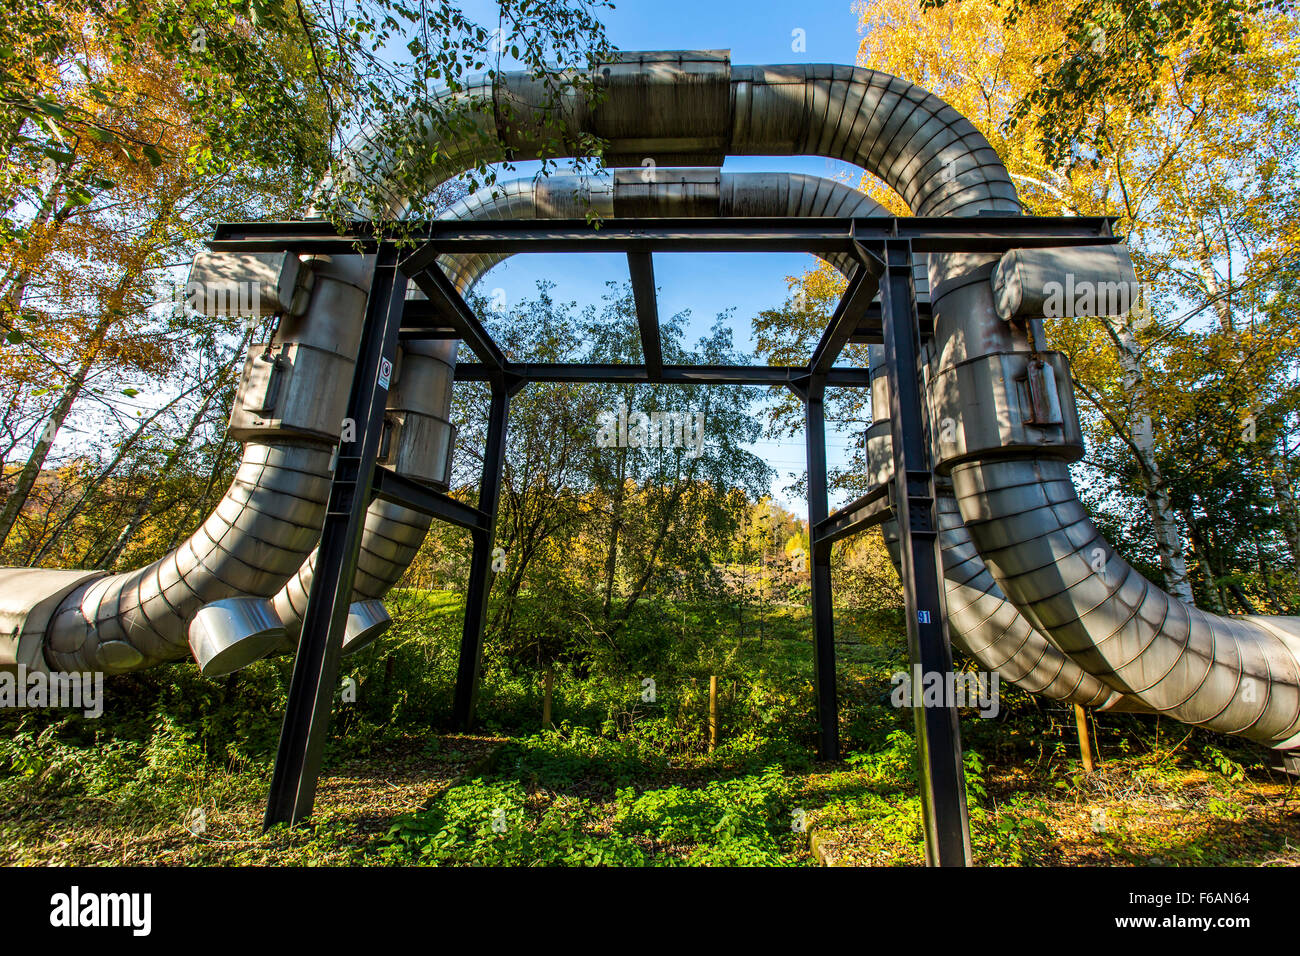 District heating pipe, operated by STEAG, in Gelsenkirchen, expansion loops, - Stock Image